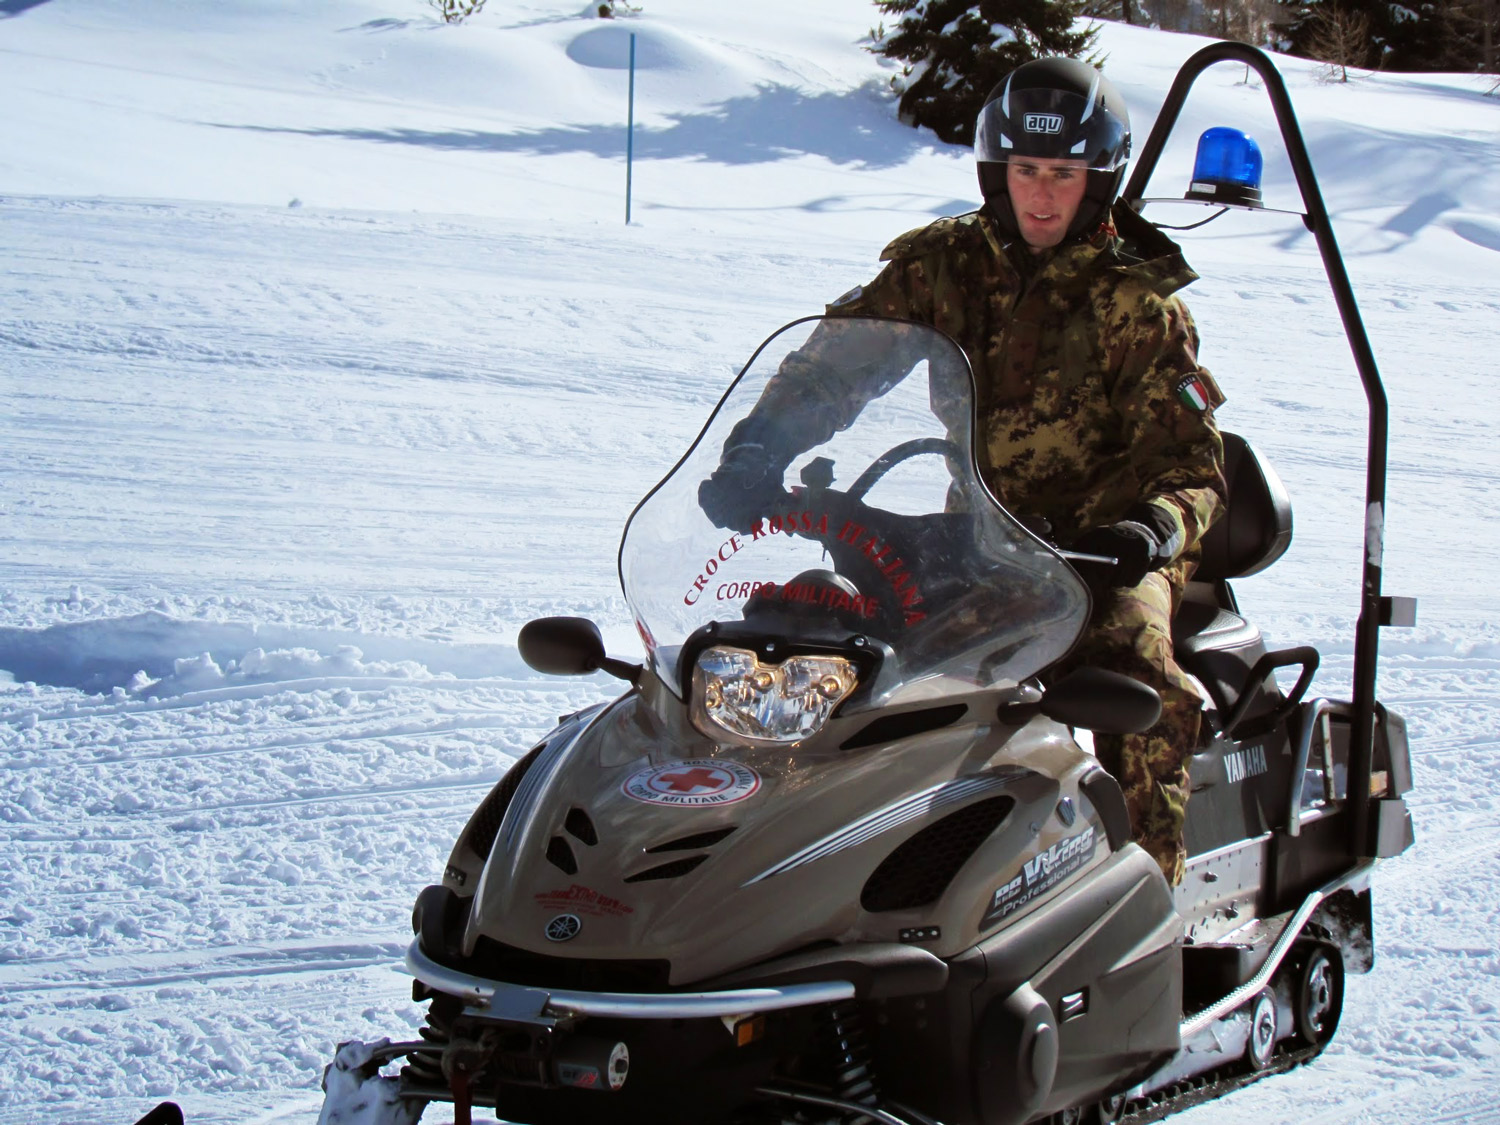 Italian Red Cross army private riding a snowmobile